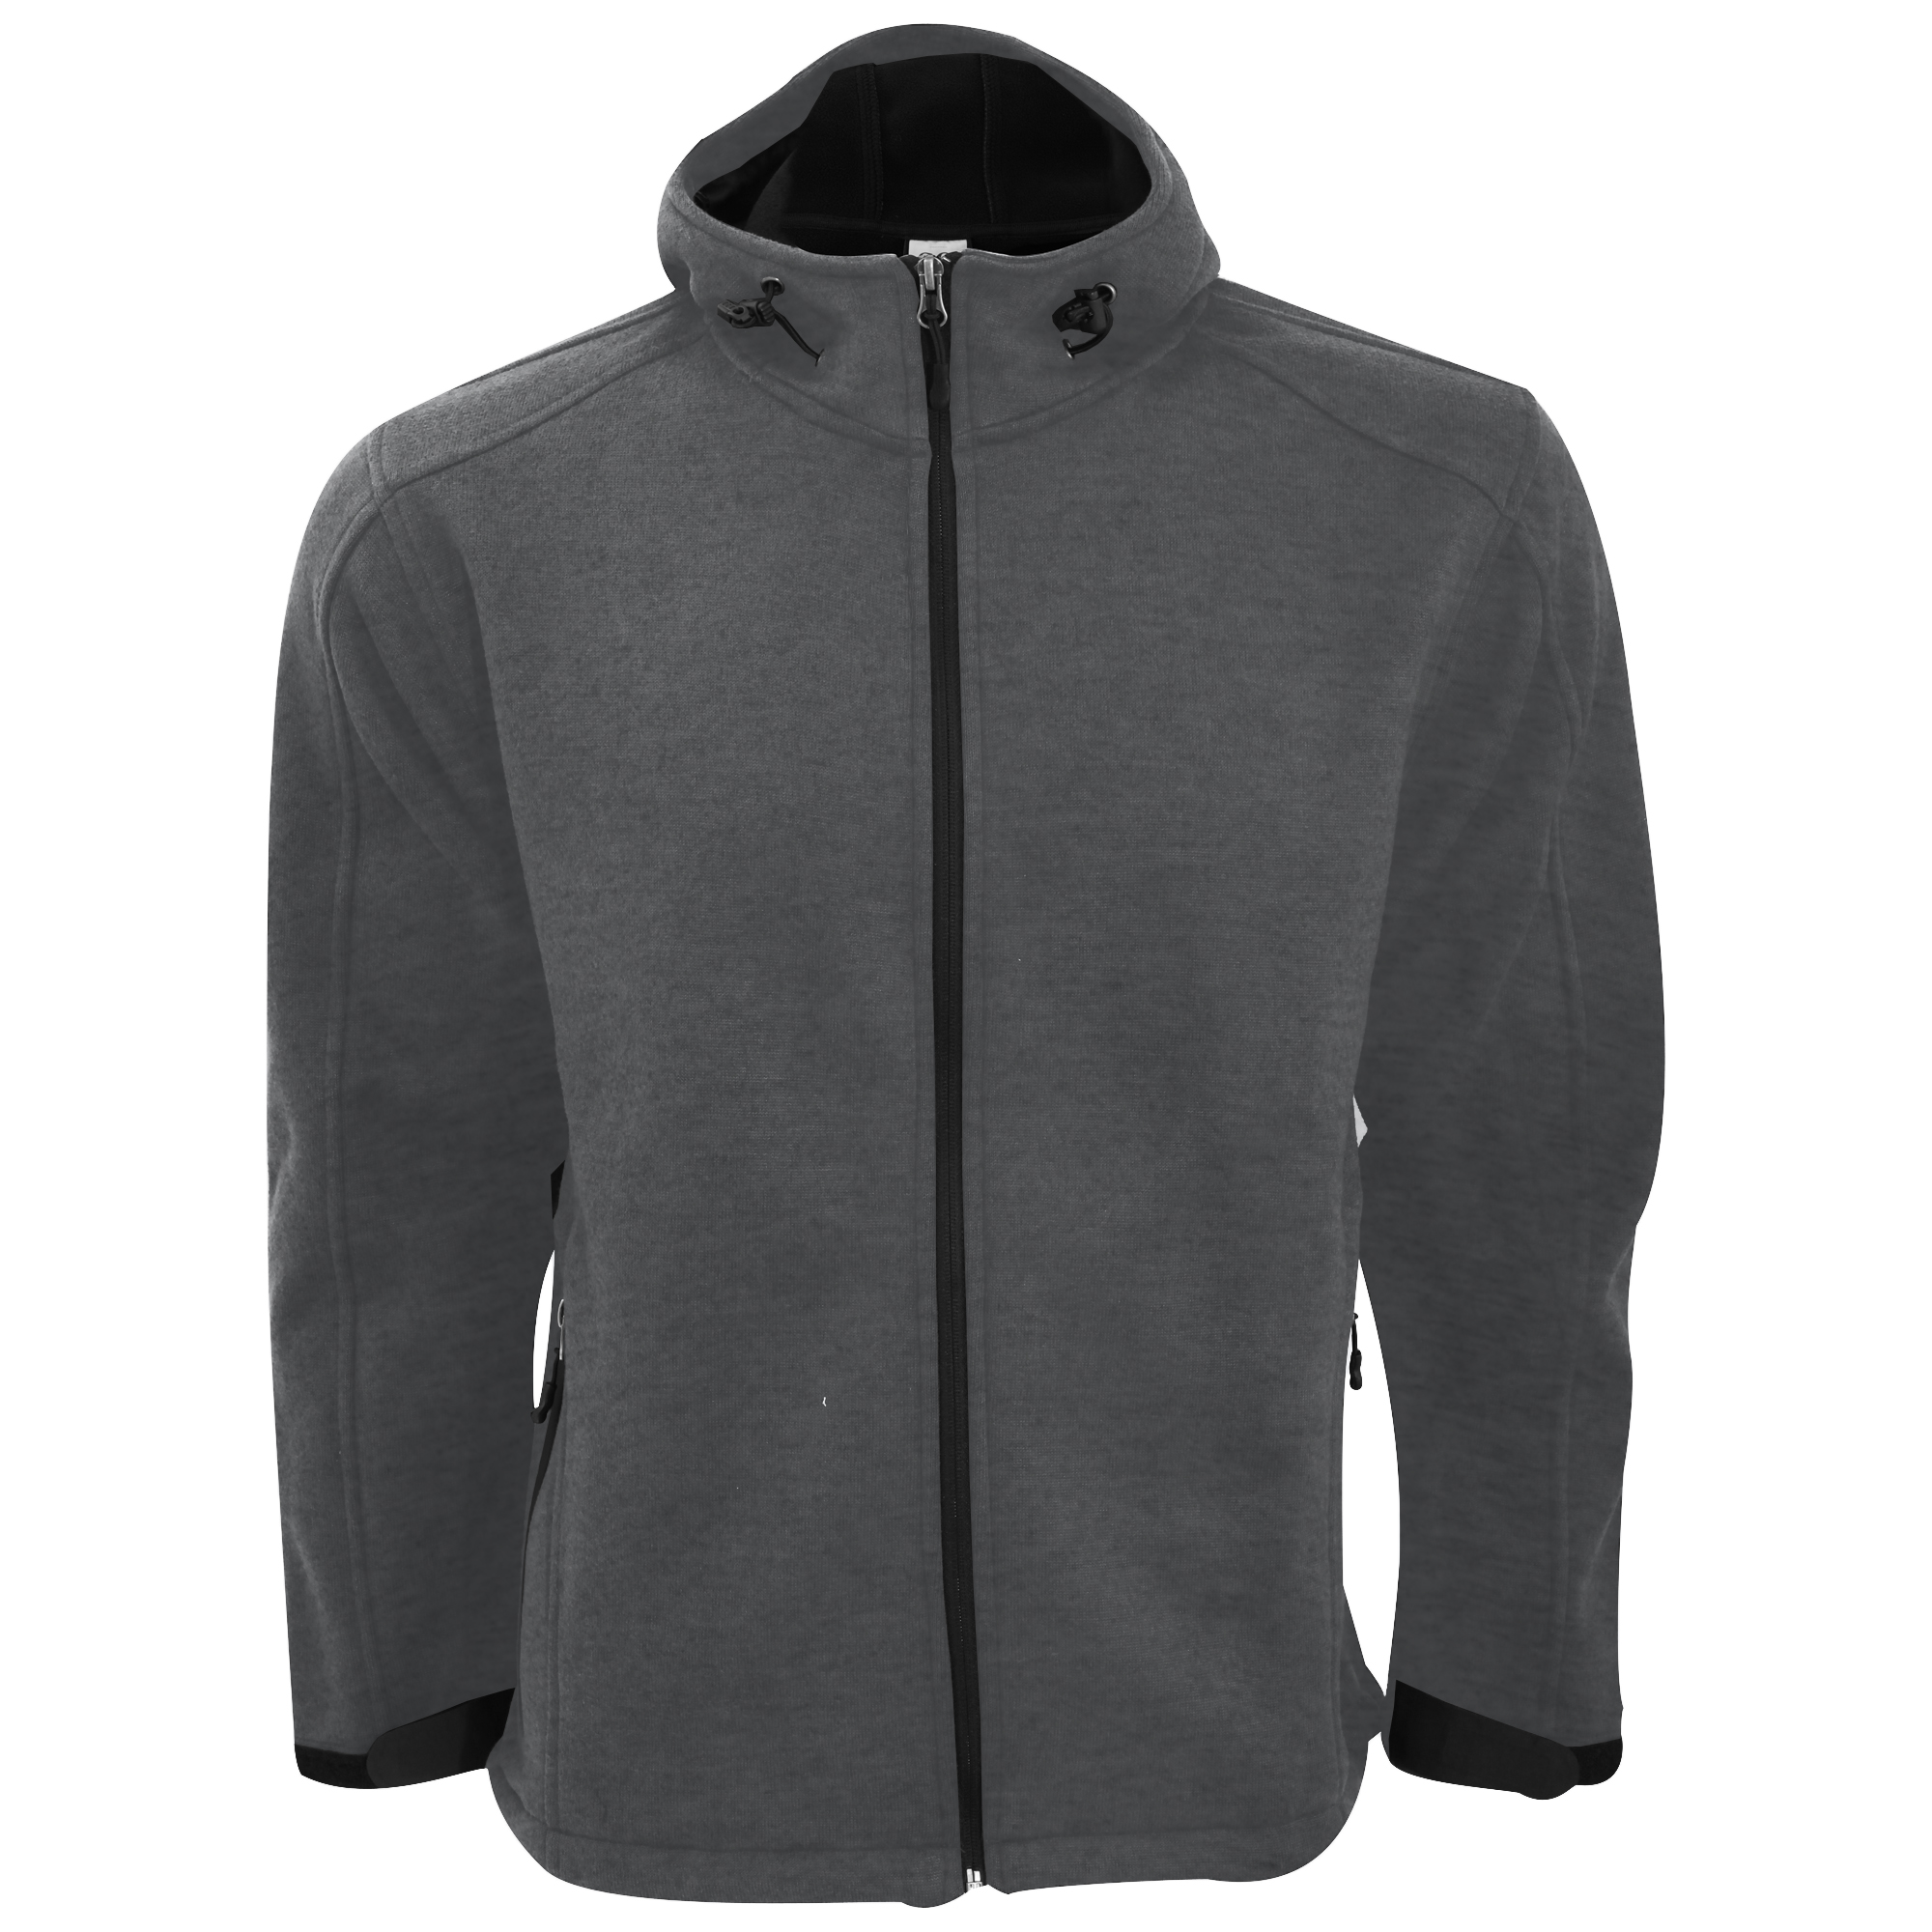 sg mens knitted bonded full zip casual outdoor hooded softshell jacket s 3xl ebay. Black Bedroom Furniture Sets. Home Design Ideas